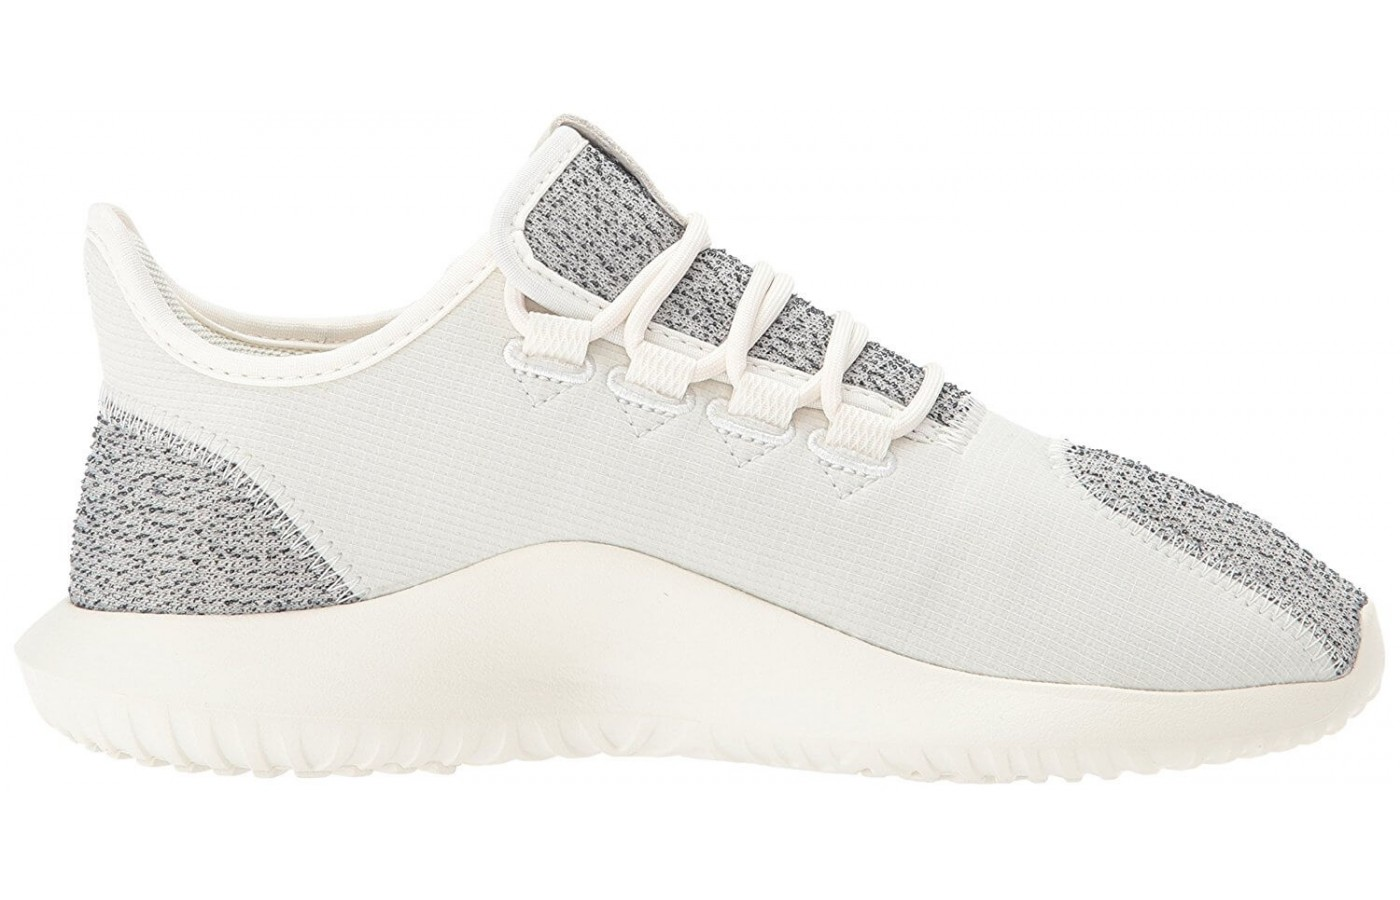 The Adidas Tubular Shadow features a sock-like upper design